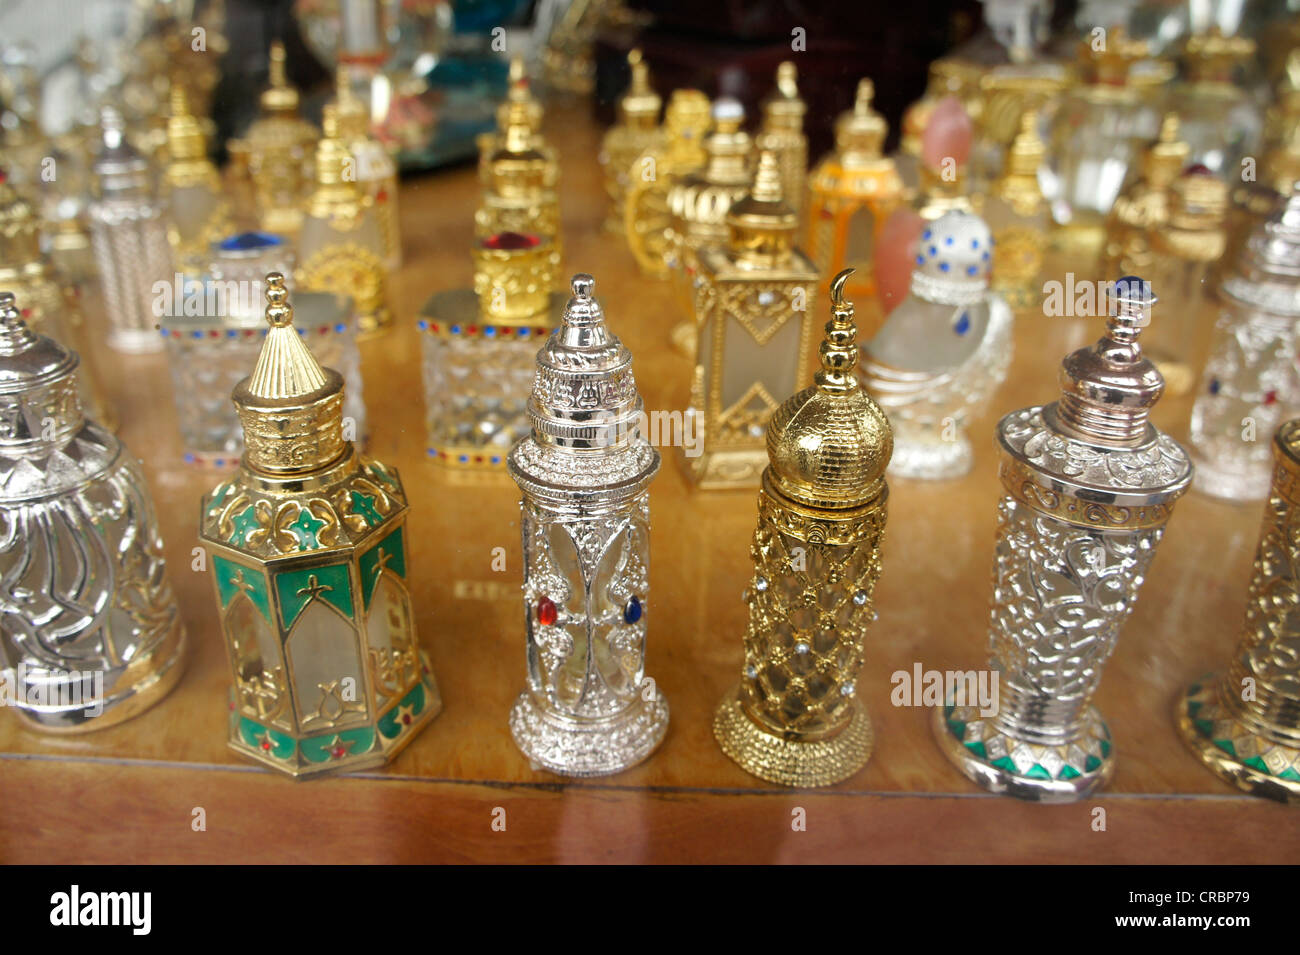 Perfume bottles in a shop window in Dubai, United Arab Emirates, Middle East, Asia - Stock Image